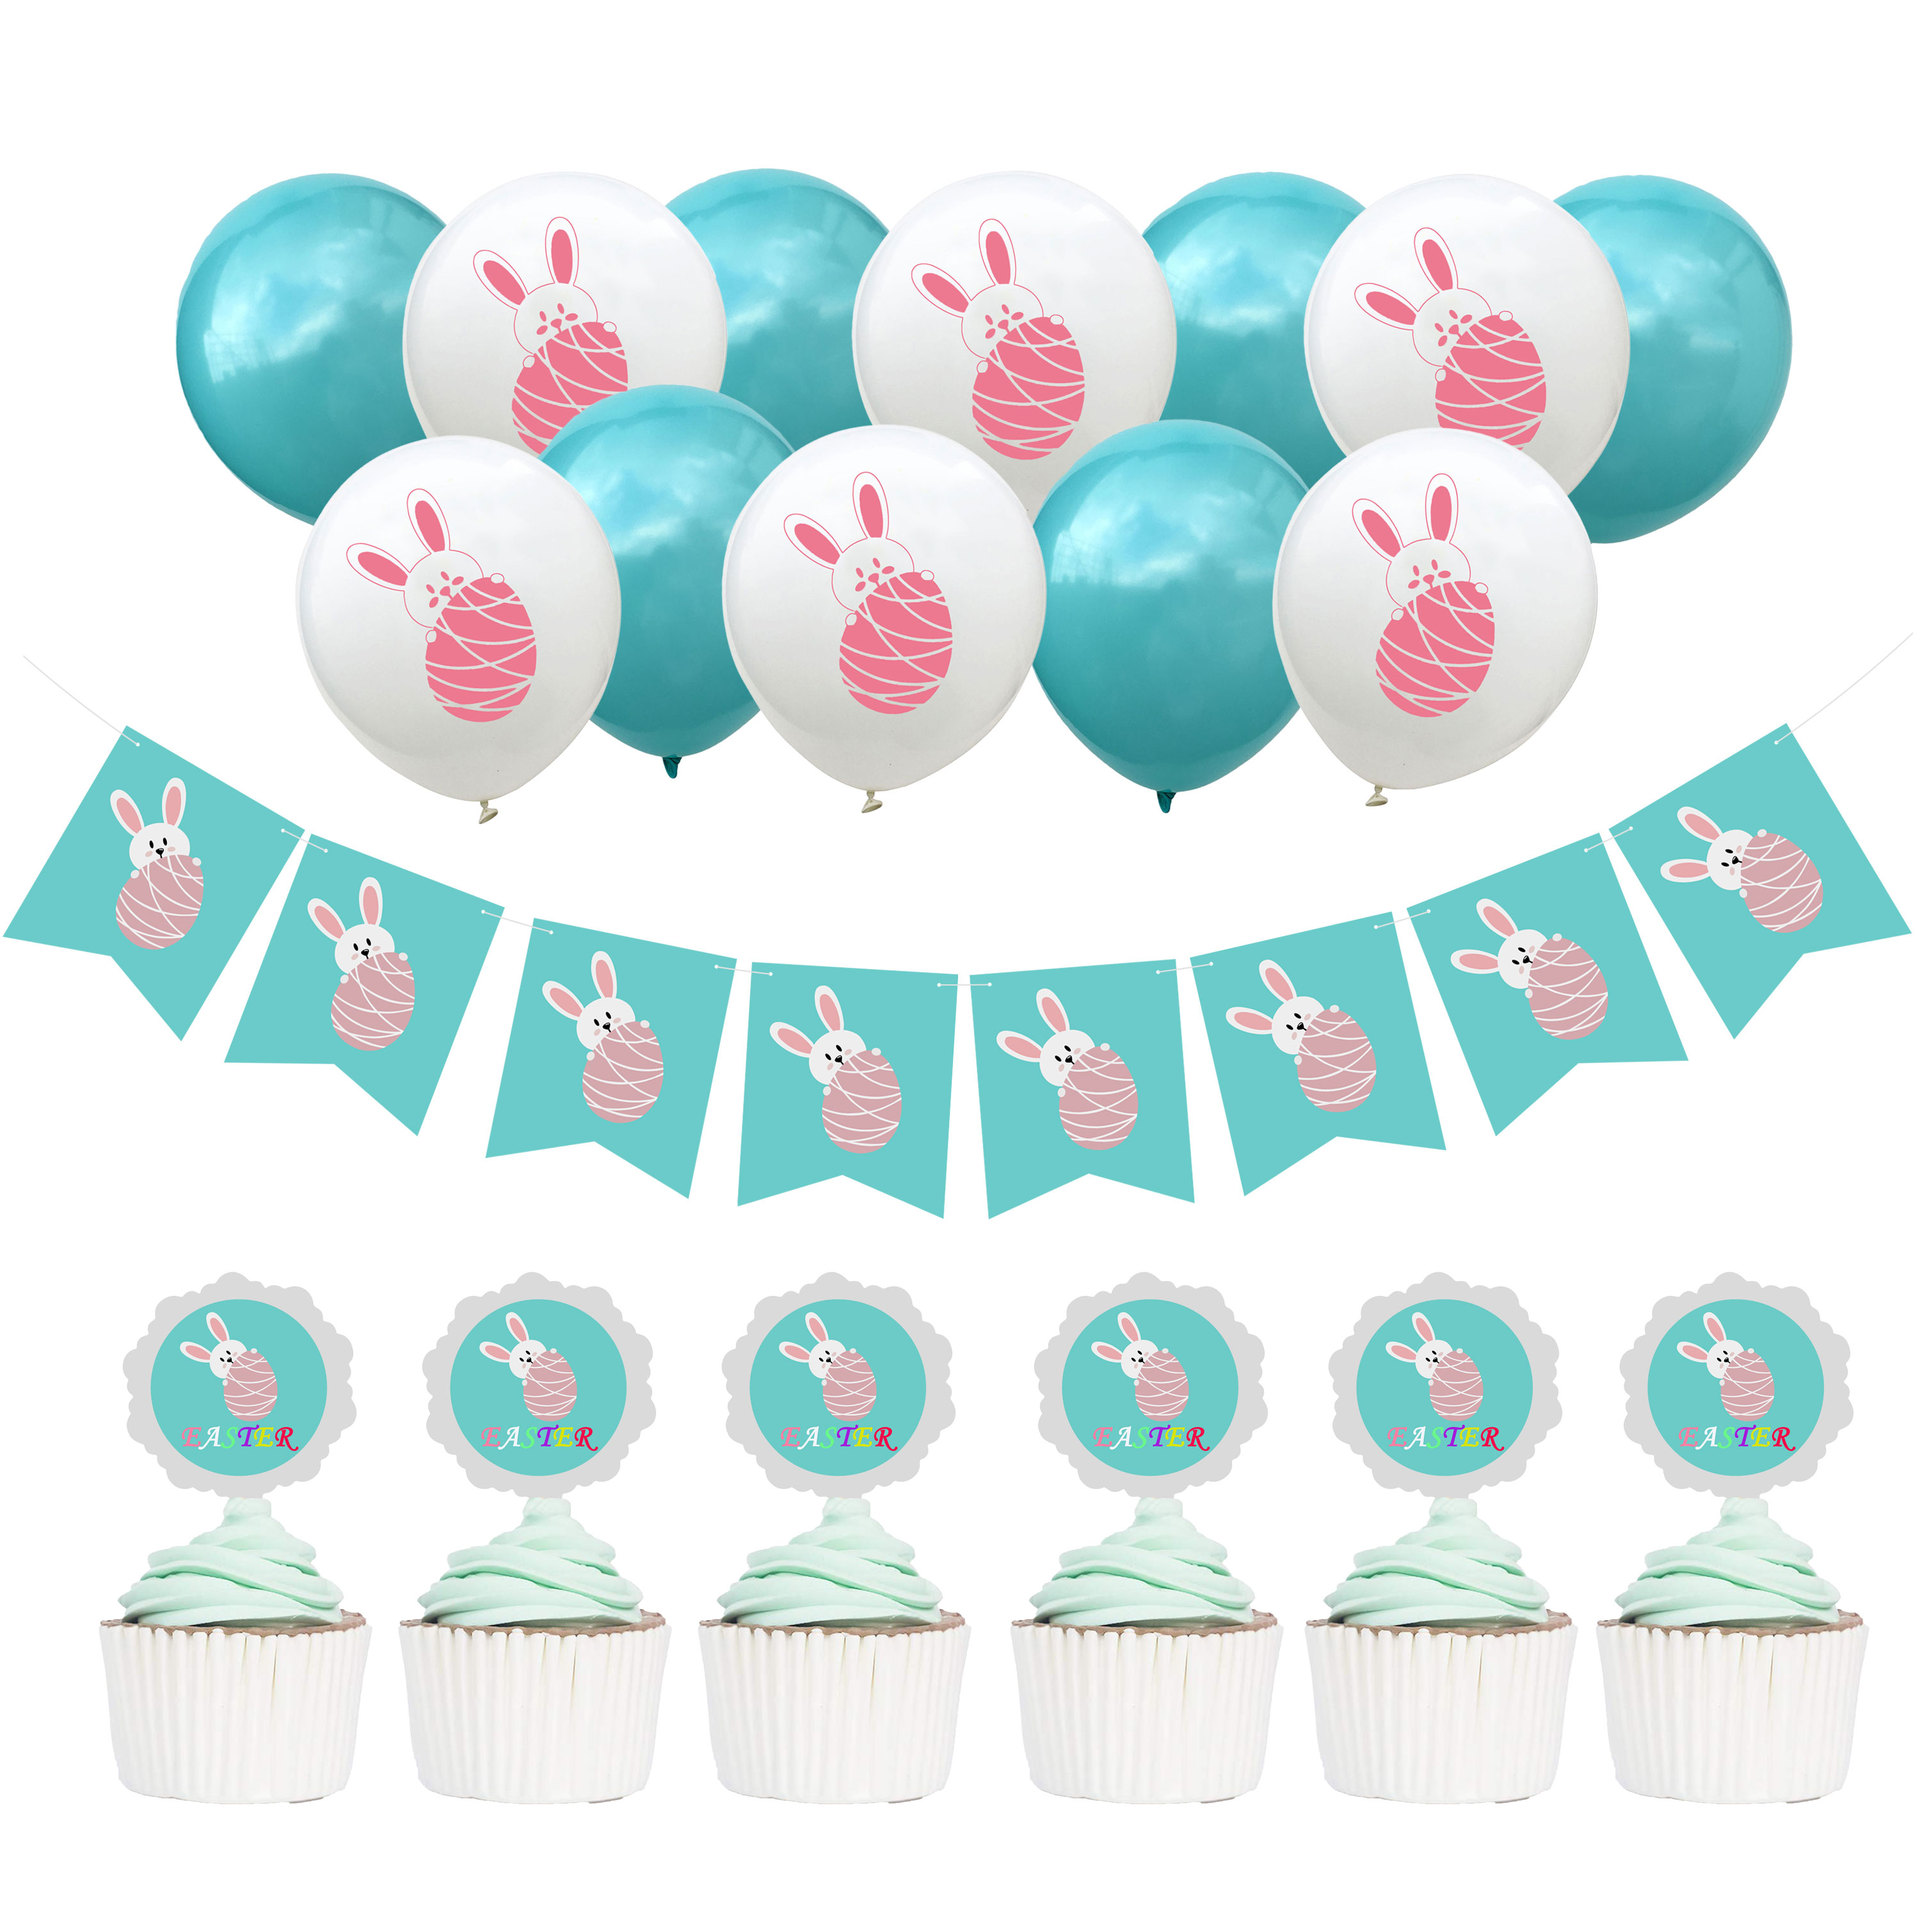 Us 1 79 Zljq Happy Easter Bunny Latex Balloon Rabbit Banner Baby Shower Boy Birthday Party Decorations Kids Cake Topper Wedding Favor 7j In Ballons